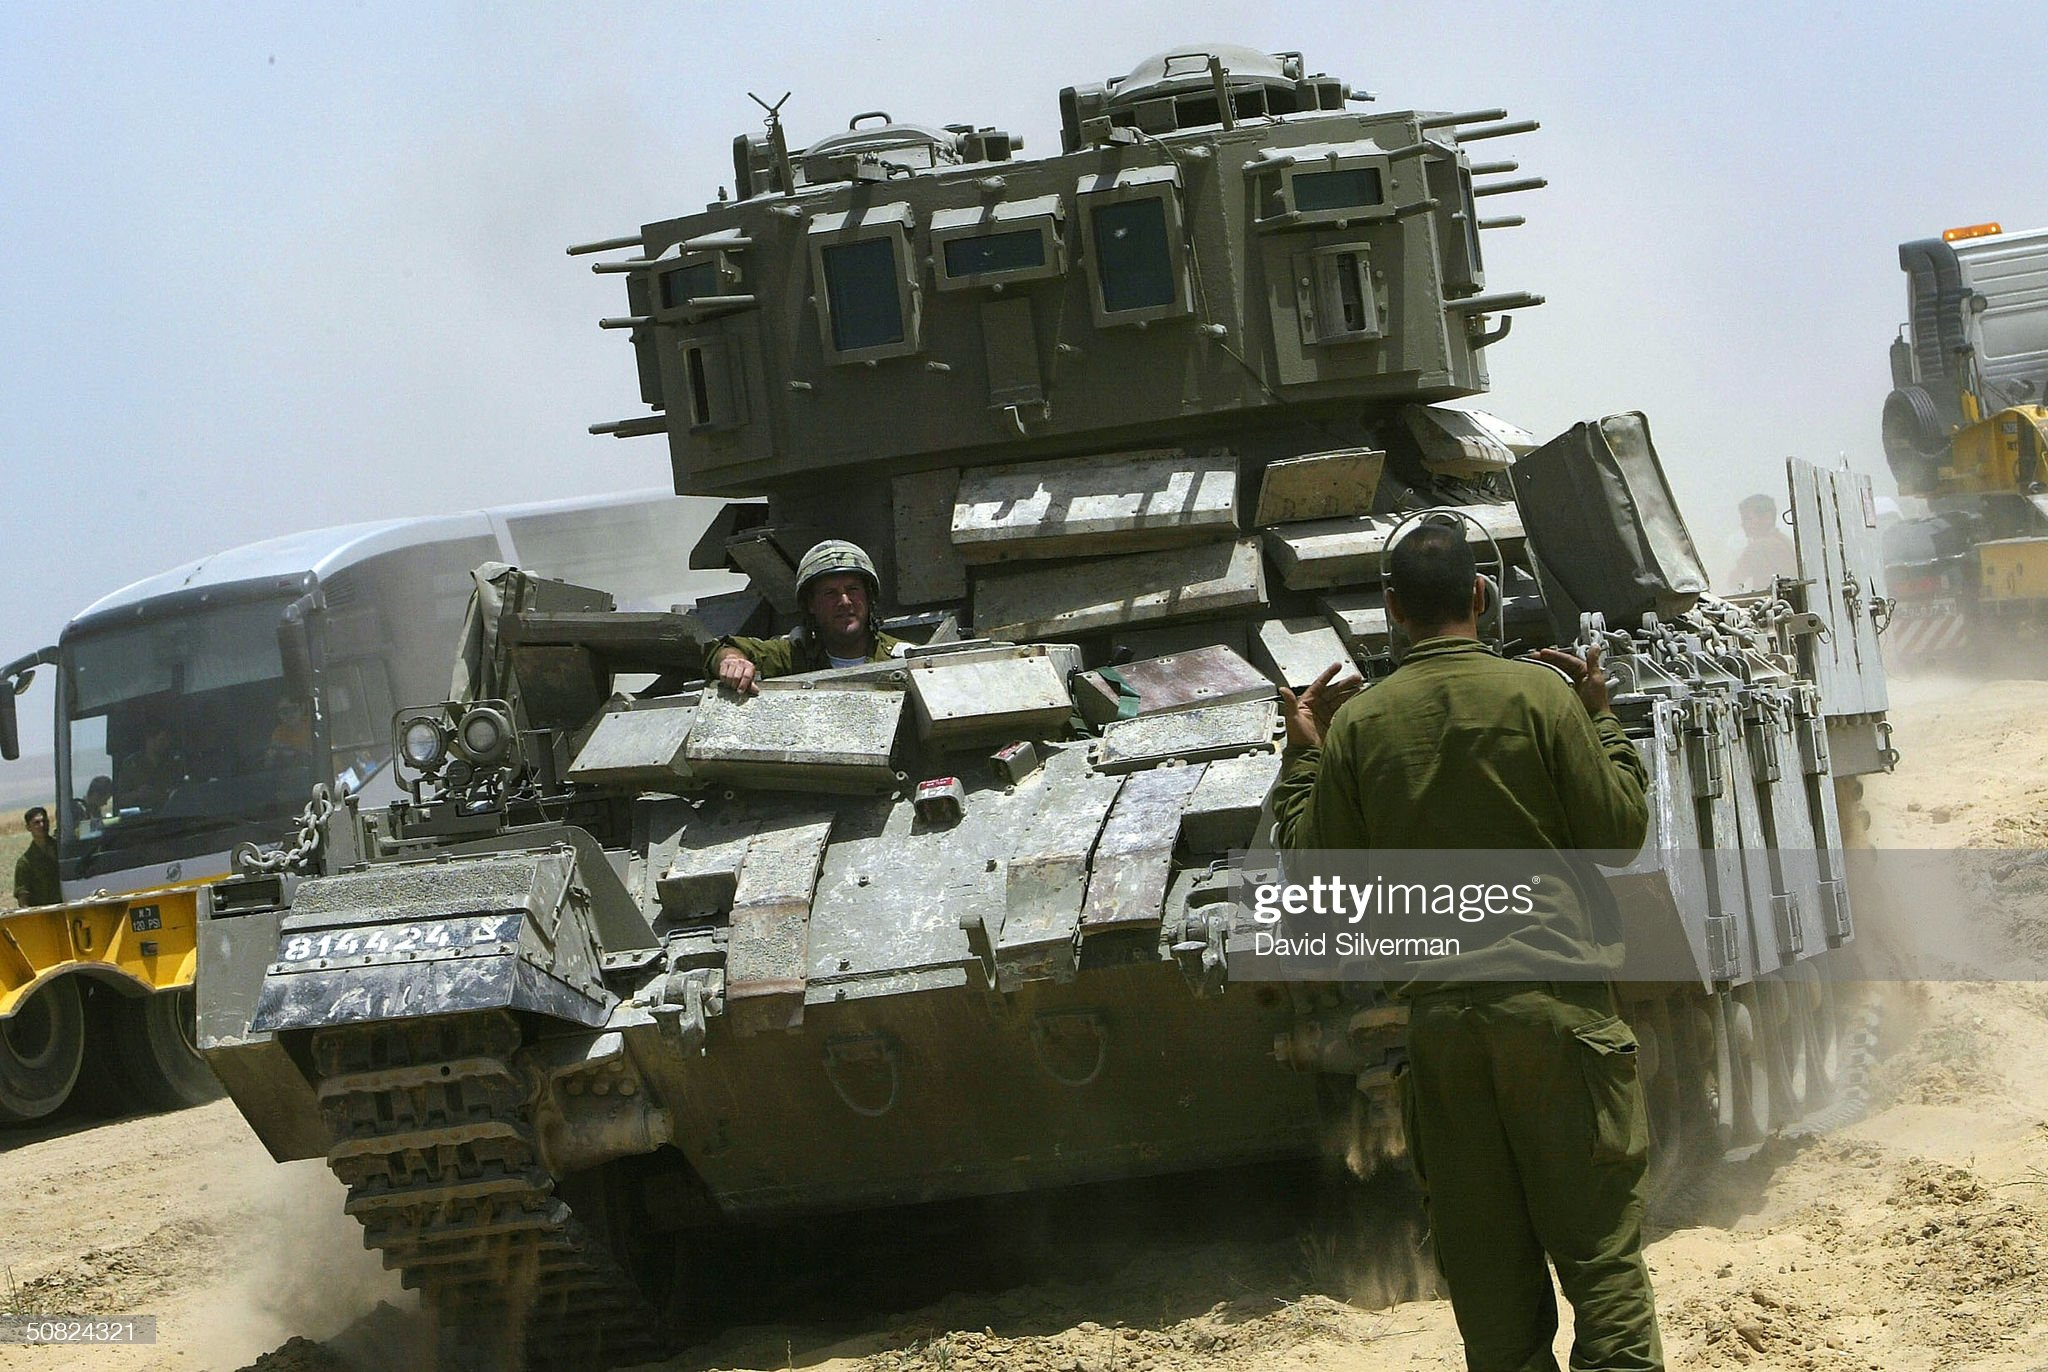 https://media.gettyimages.com/photos/an-israeli-soldier-directs-an-armored-personnel-carrier-into-place-picture-id50824321?s=2048x2048